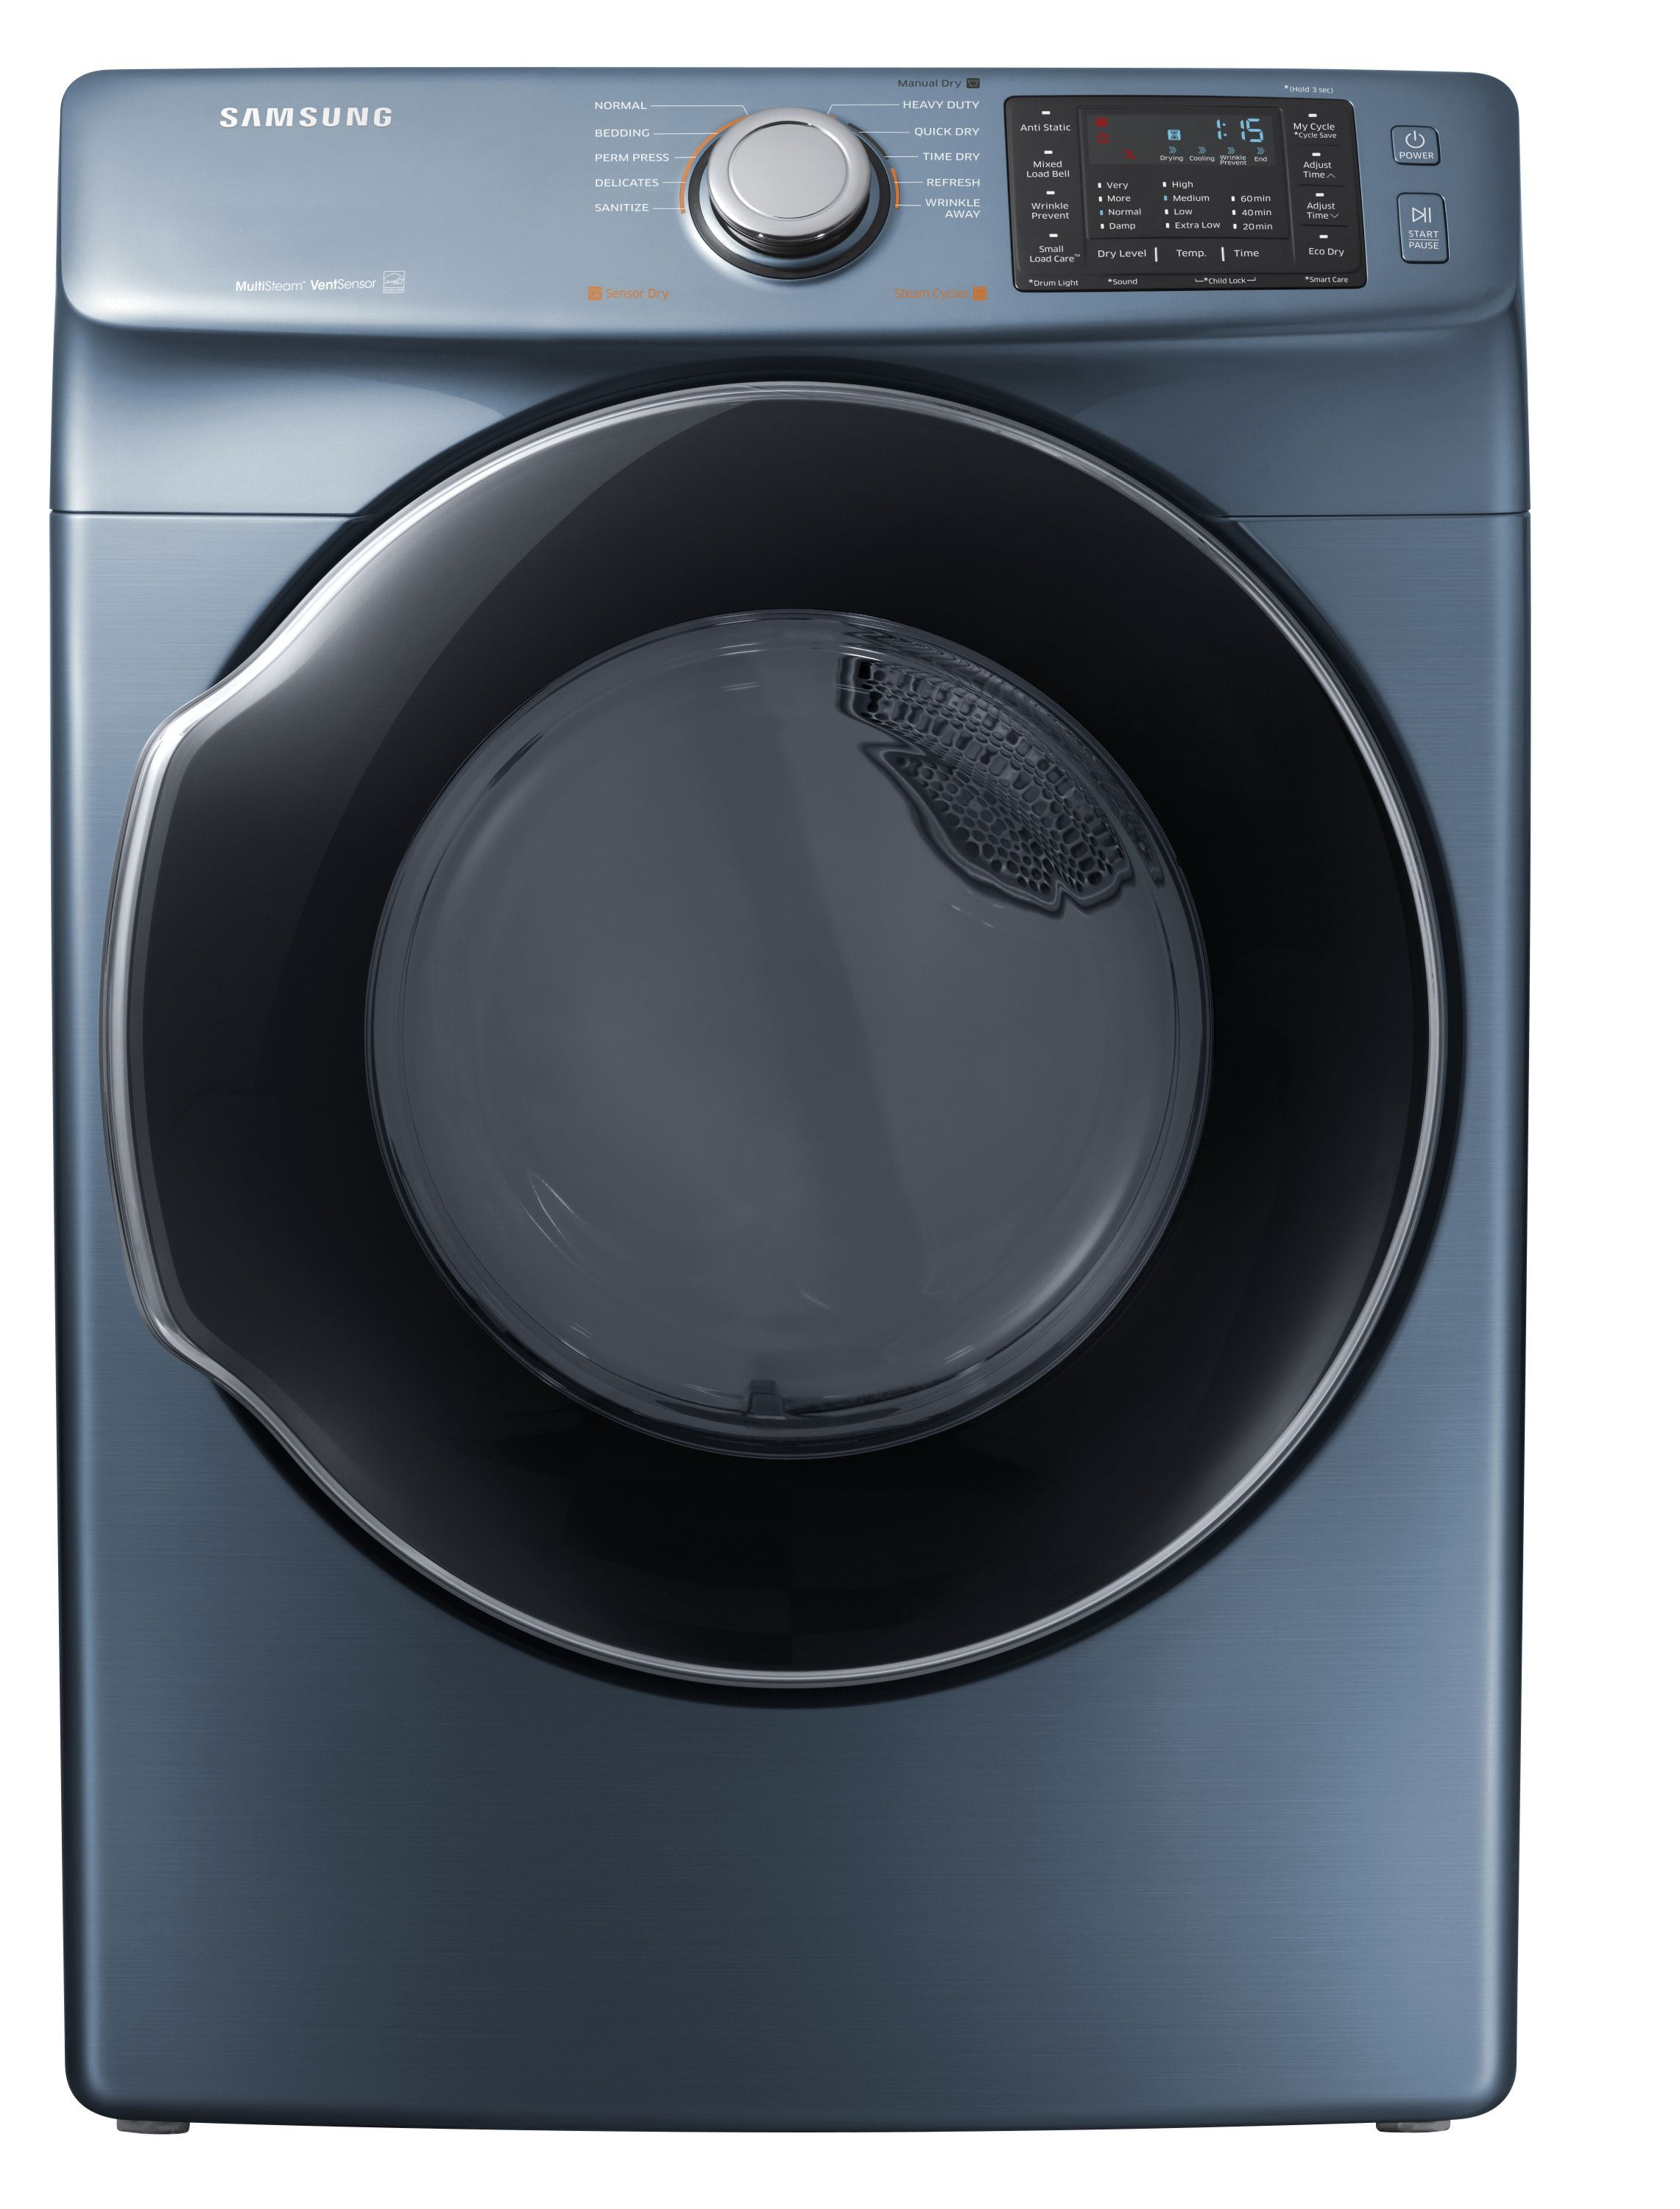 Samsung Dve45m5500w A3 Electric Dryer Built To Dry Certified To